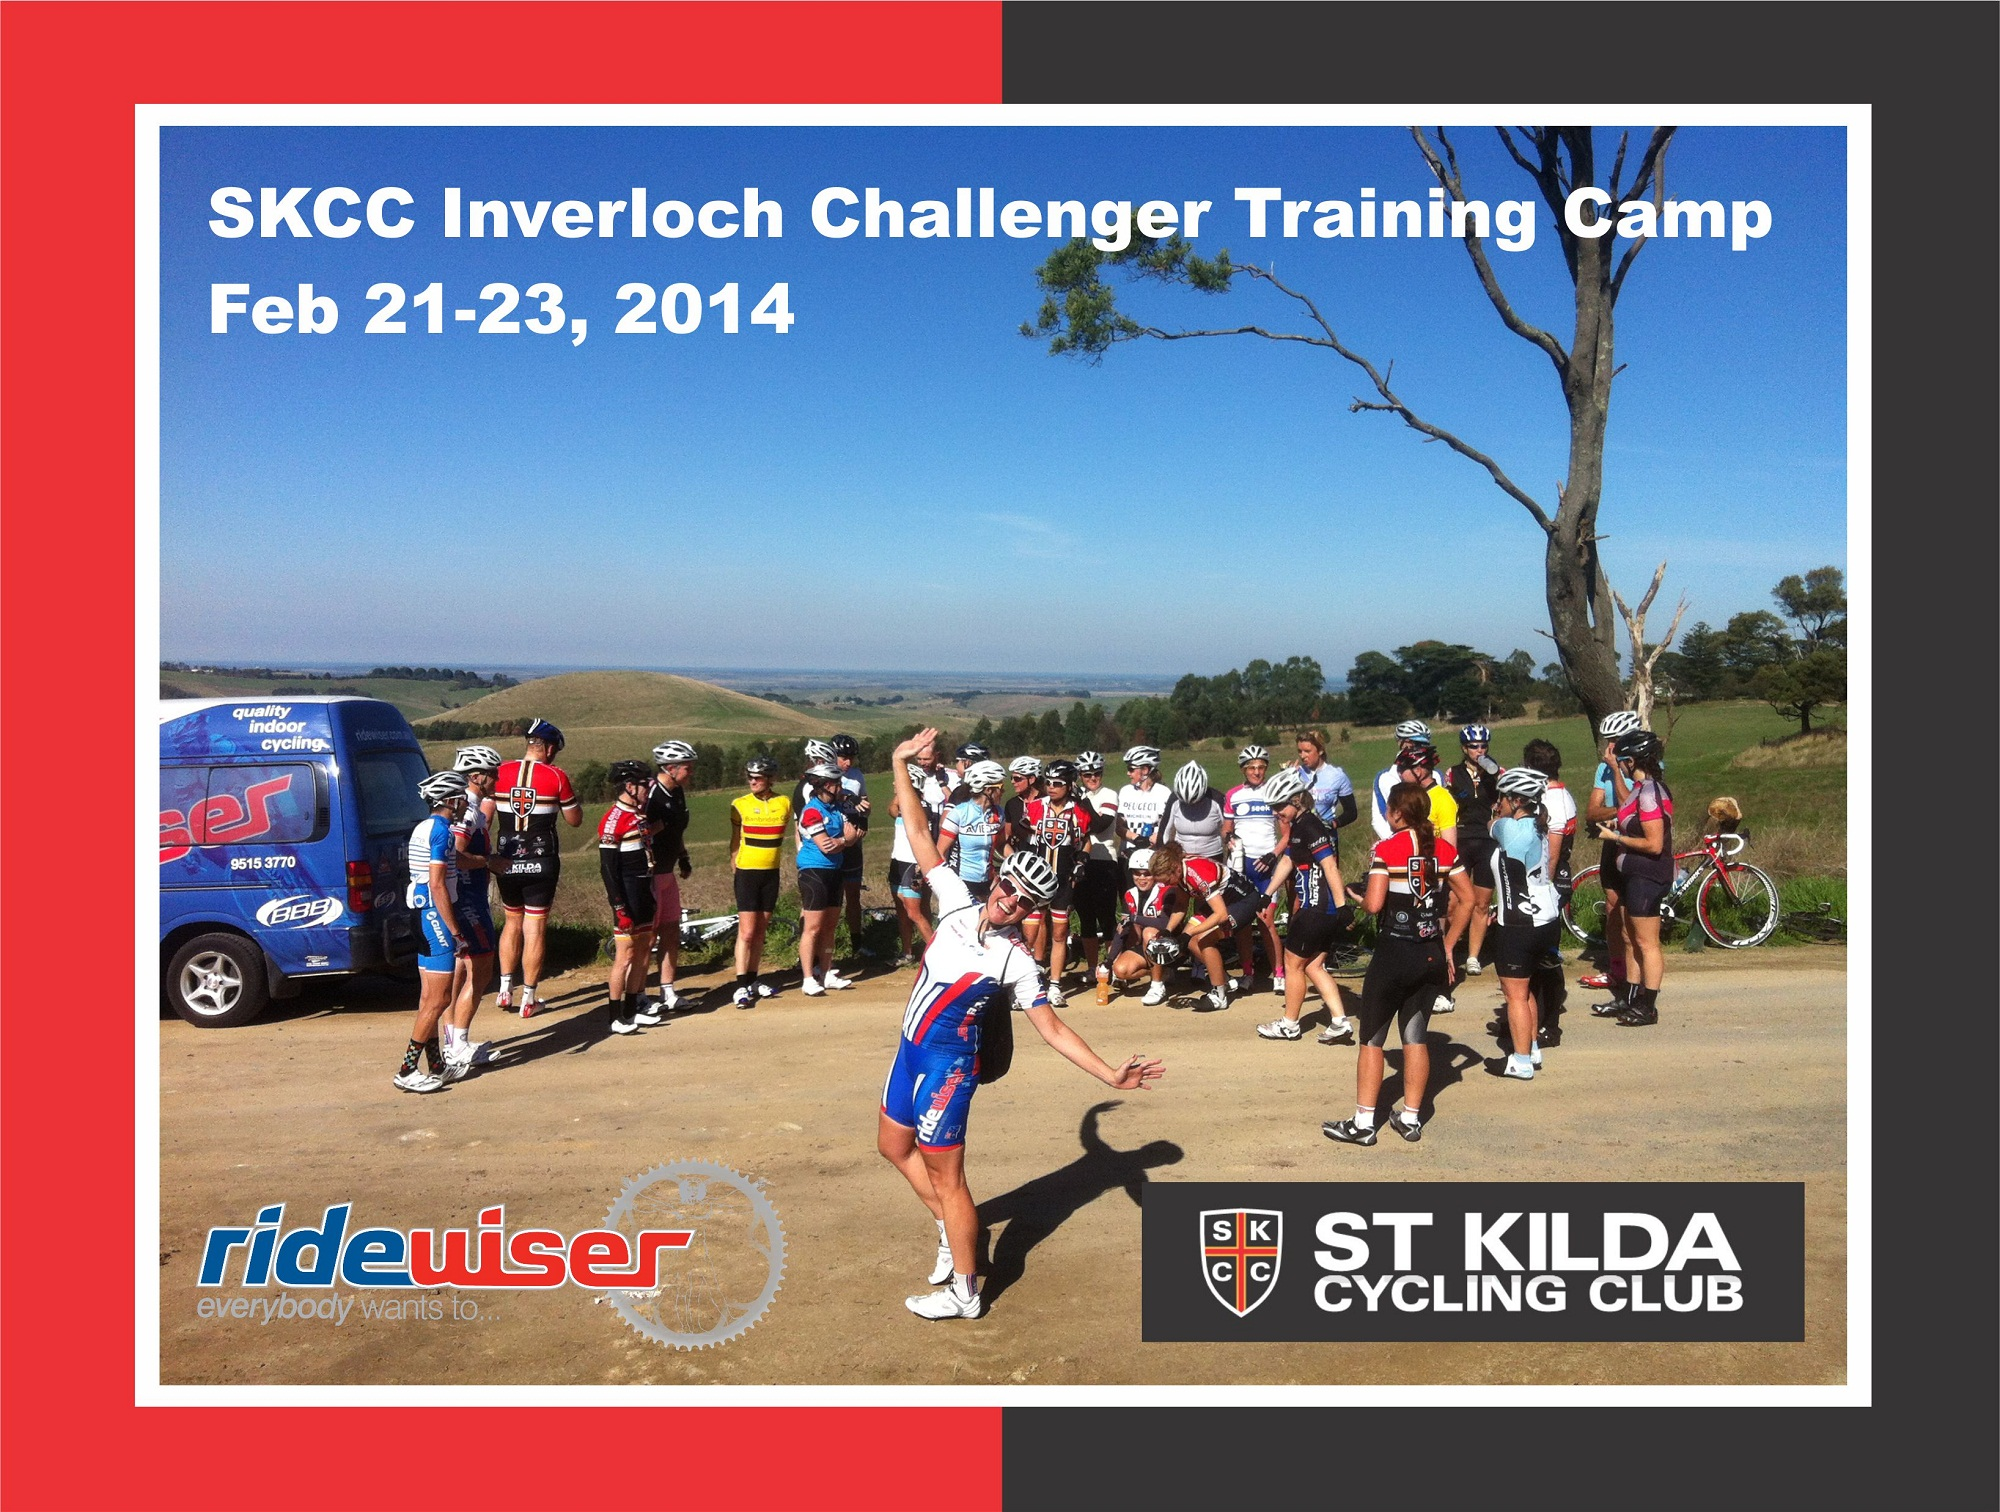 SKCC – Ridewiser Inverloch Challenger 2014 Cycling Development Training Camp